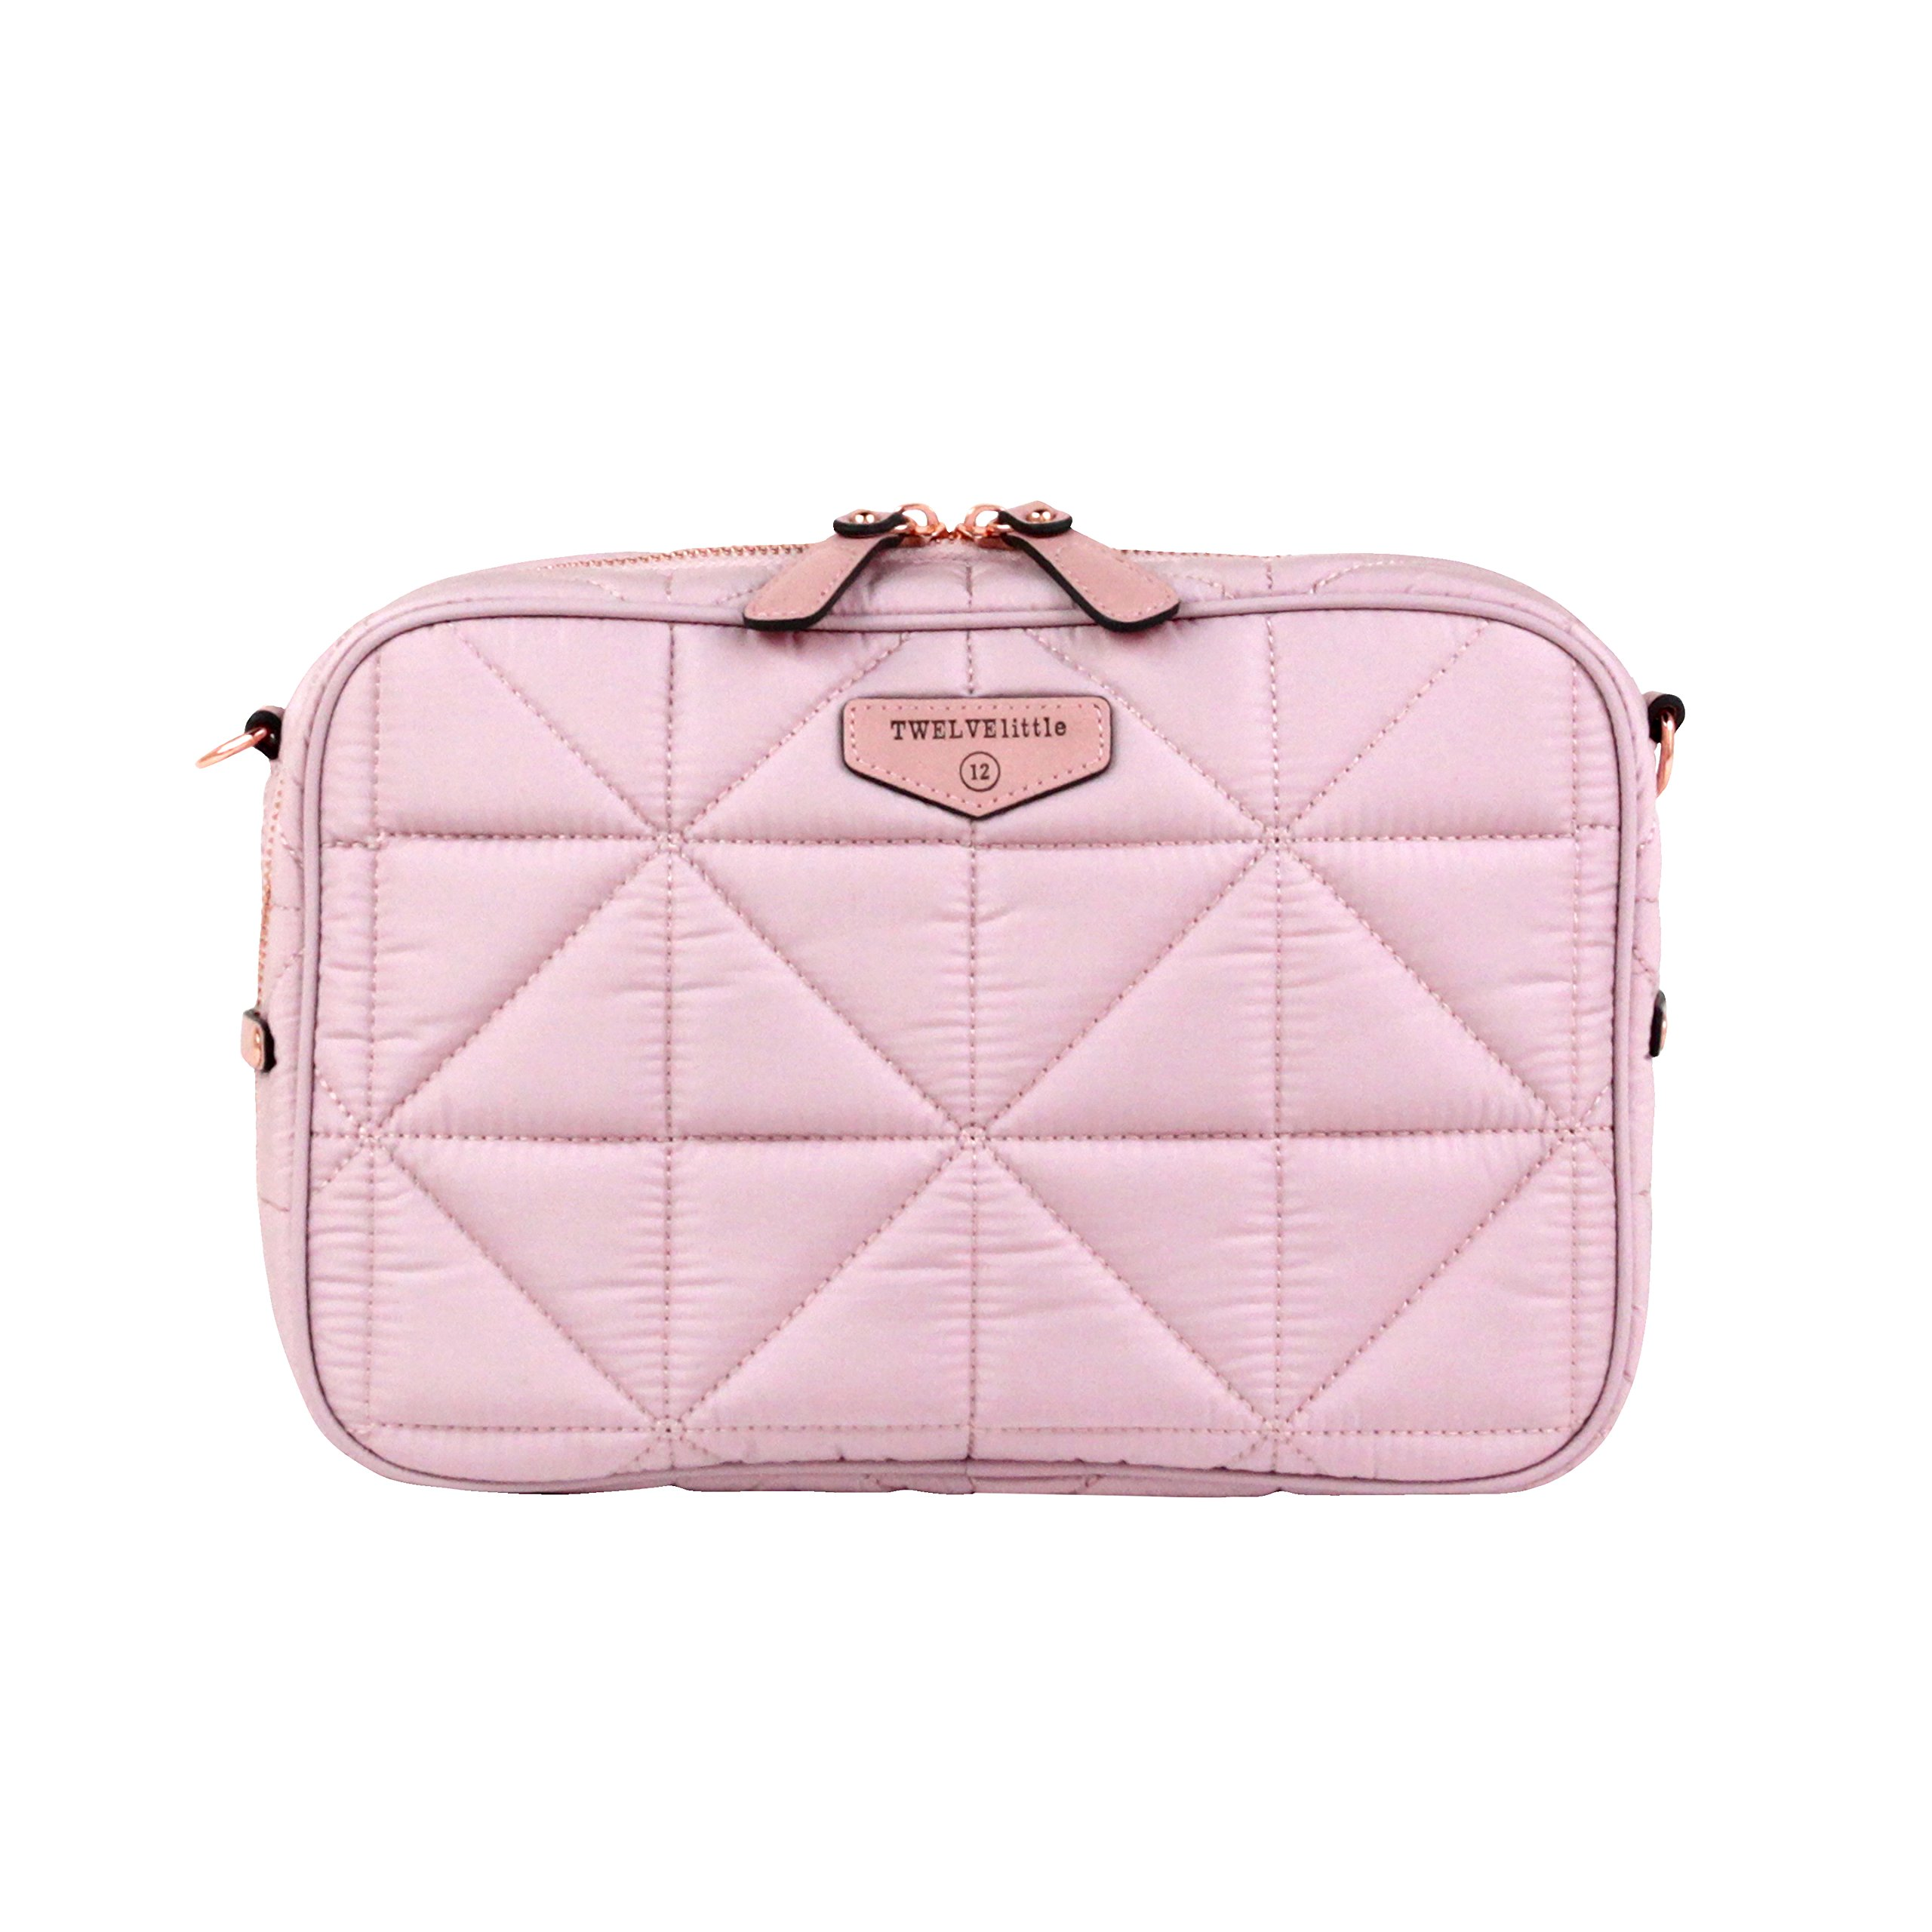 TWELVElittle Diaper Clutch 2.0 (Blush Pink - New) - Fashion Diaper Bag for Moms and Dads, Worn As Clutch or Crossover Bag with Compartments for Diapers, Wipes and Changing Pad